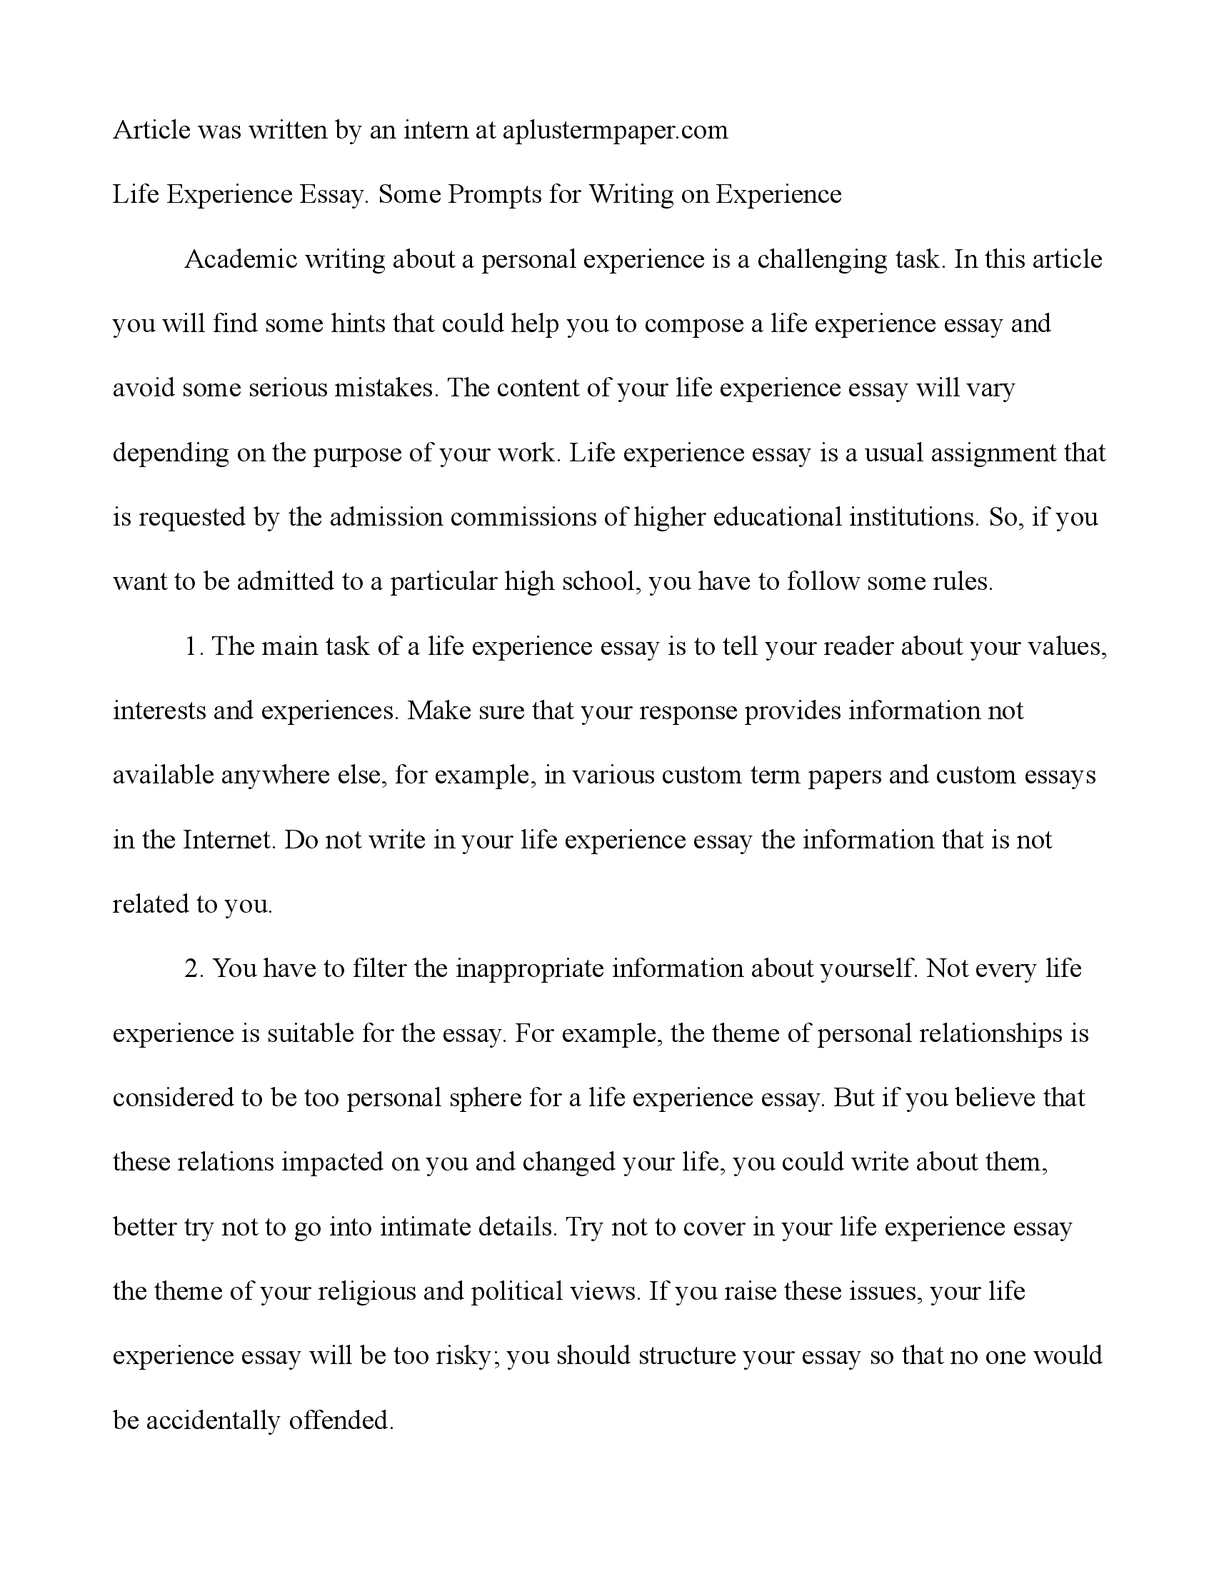 a challenging experience essay